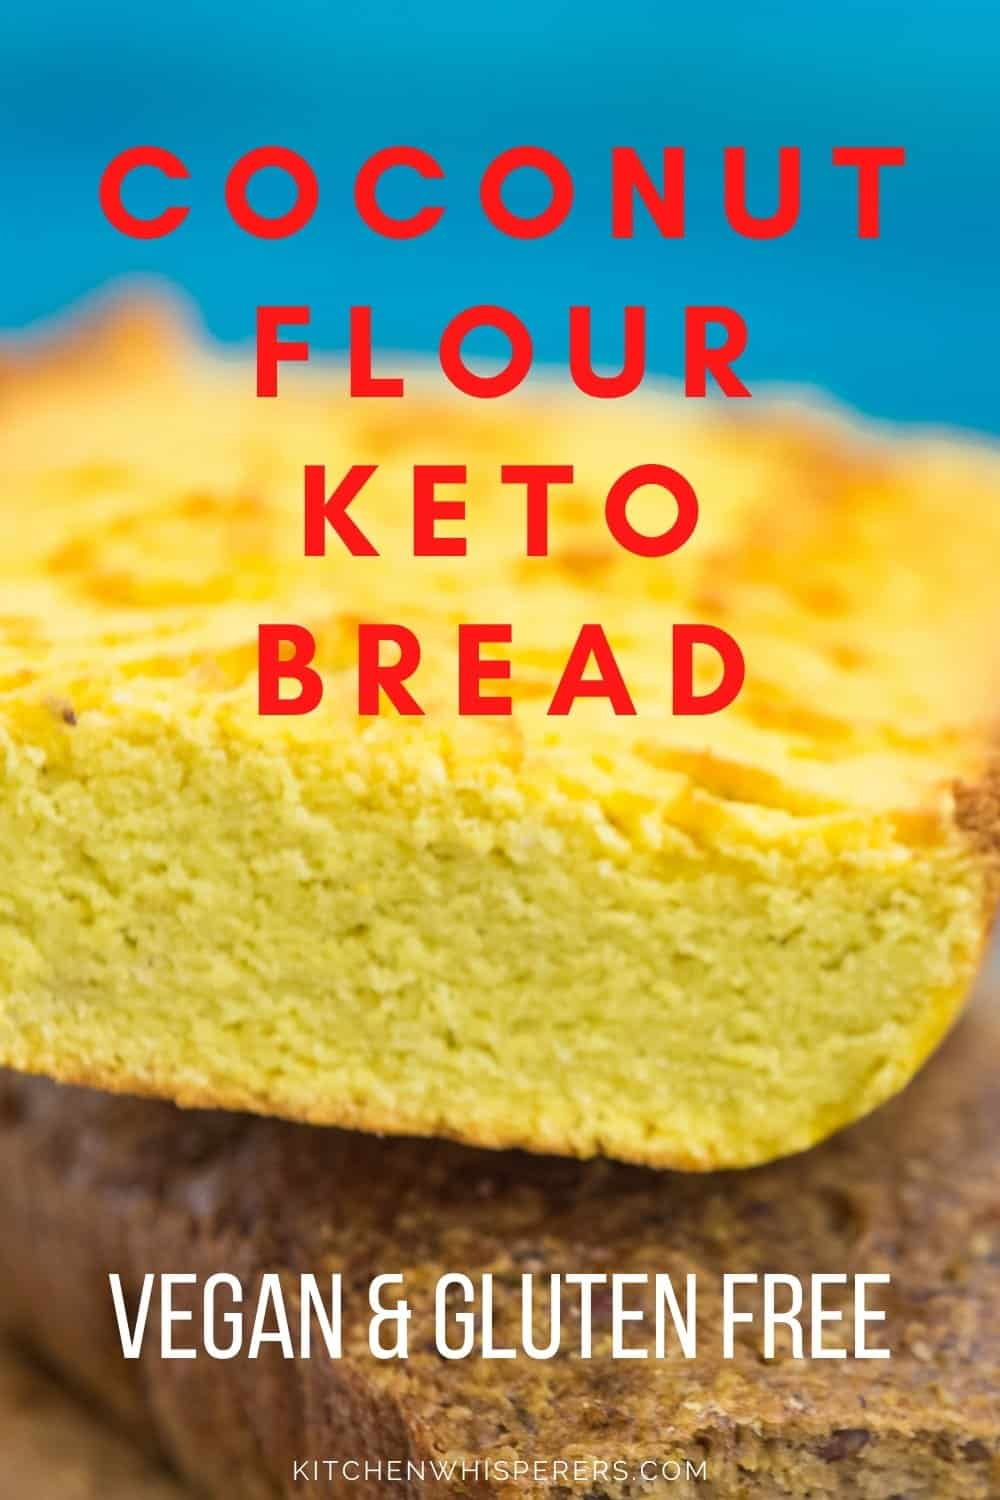 Coconut Flour Keto Bread Recipes, Vegan & Gluten Free